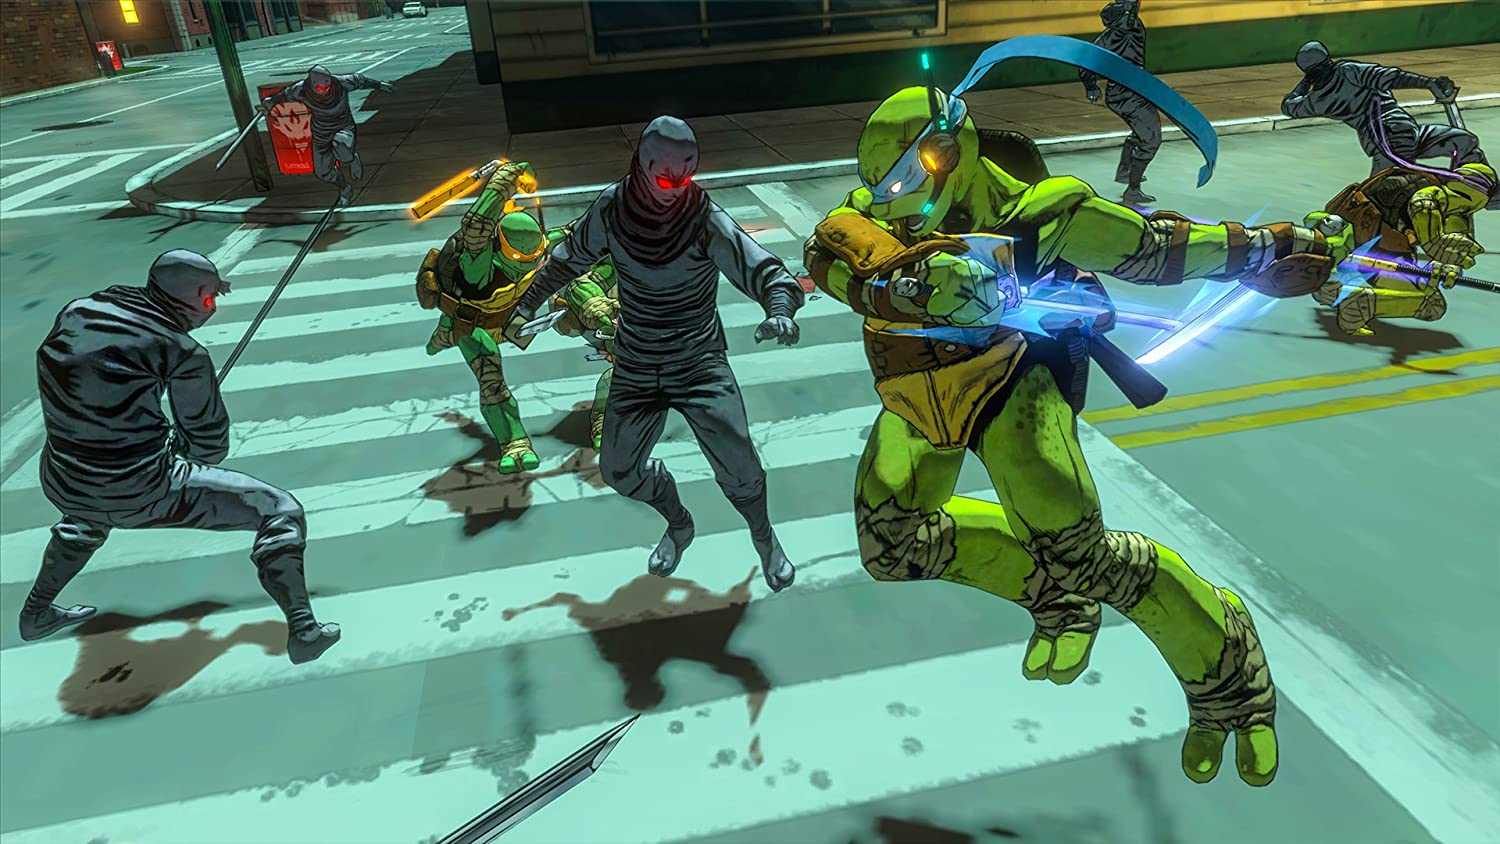 Amazon.com: Teenage Mutant Ninja Turtles: Mutants in ...